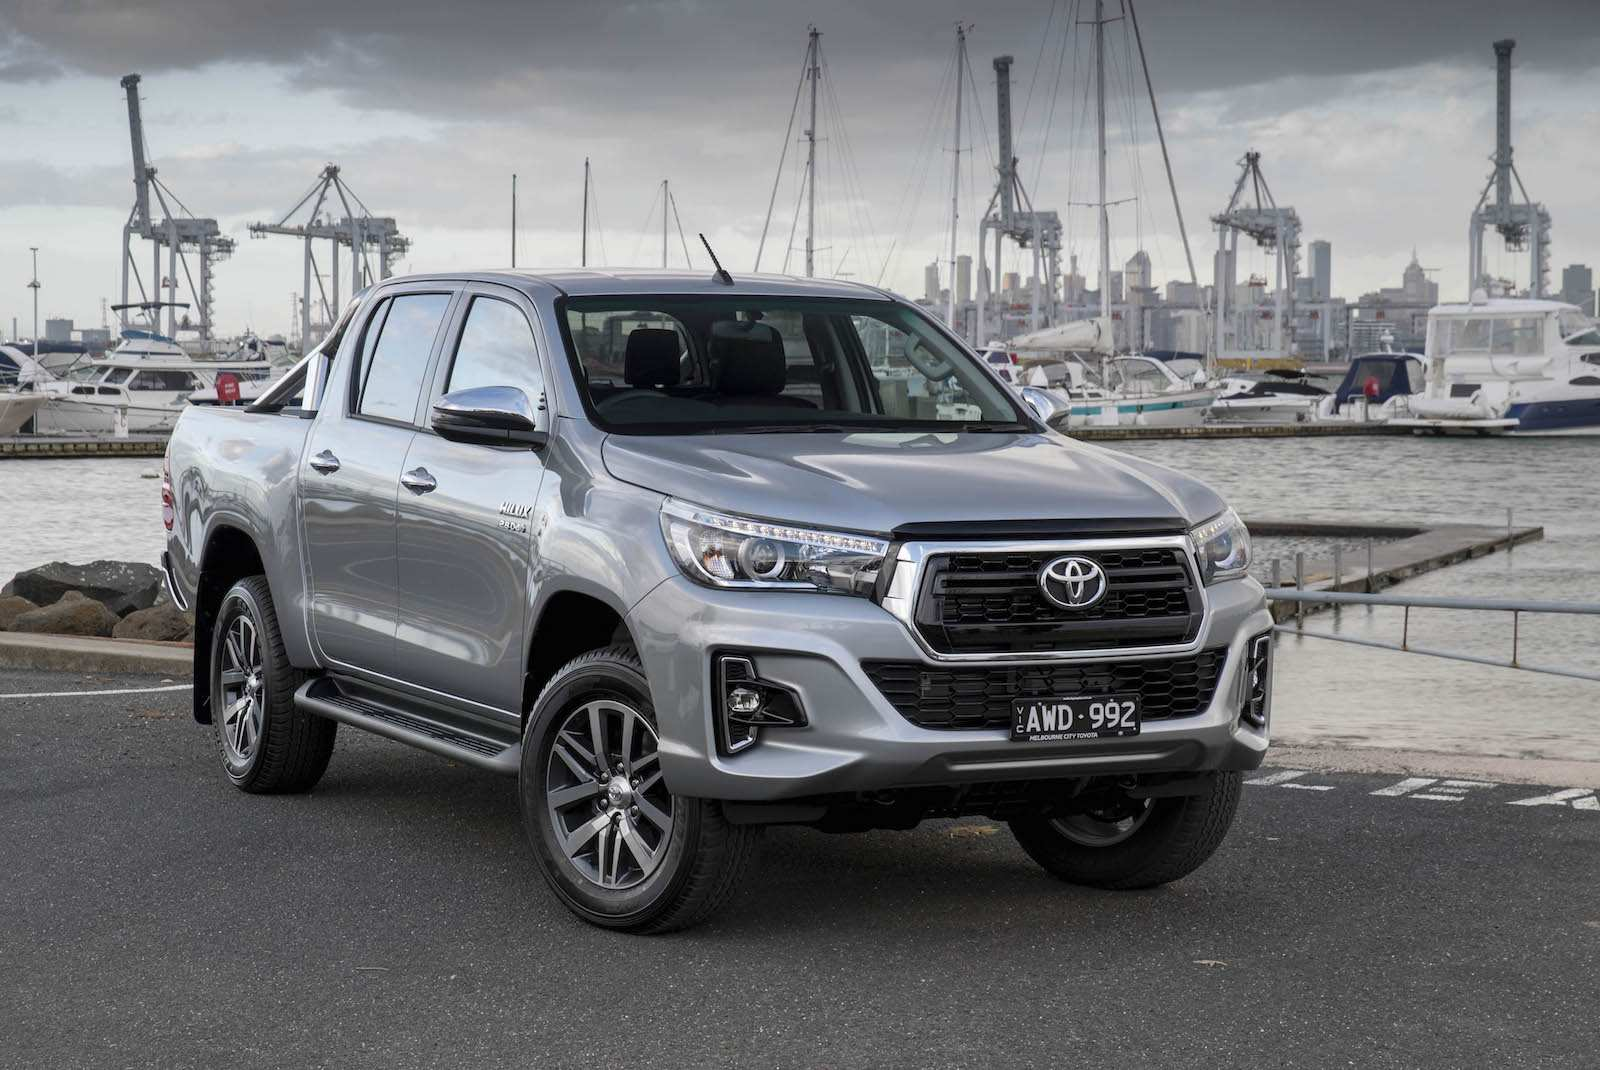 70 Best Review 2019 Toyota Hilux Facelift Redesign with 2019 Toyota Hilux Facelift